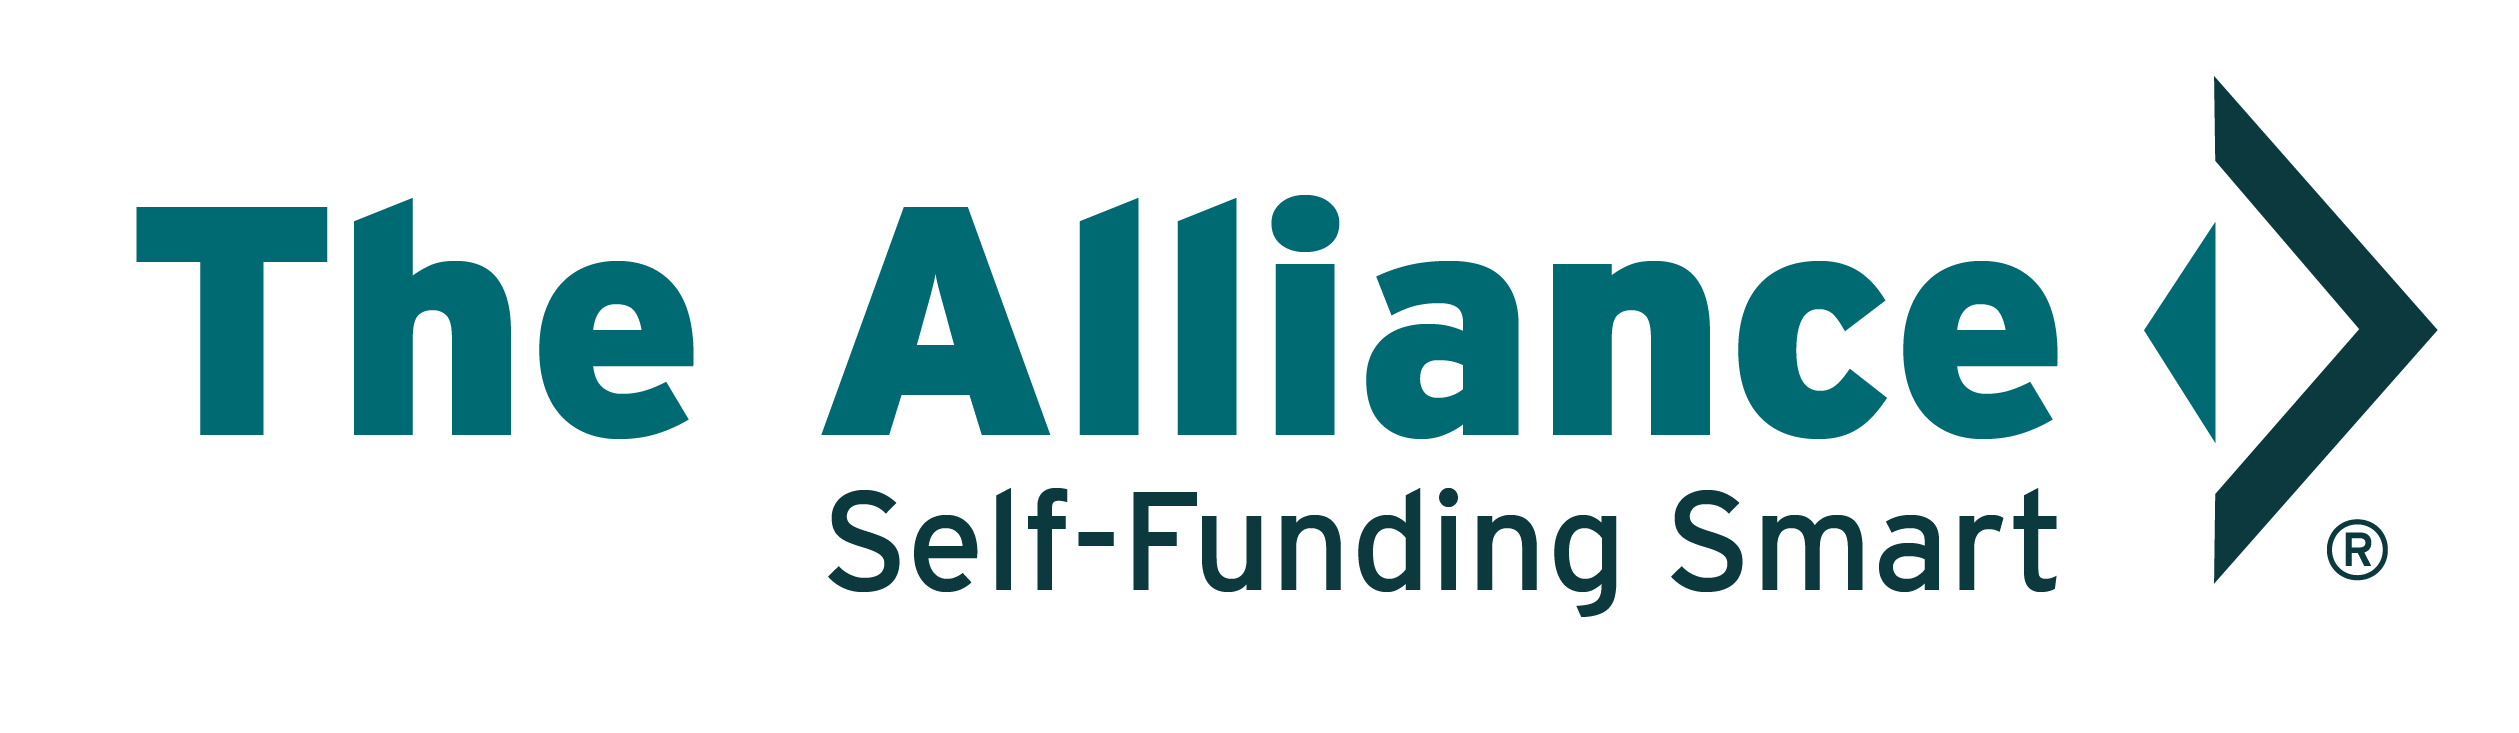 Customer Service And Faq The Alliance Self Funded High Value Provider Networks